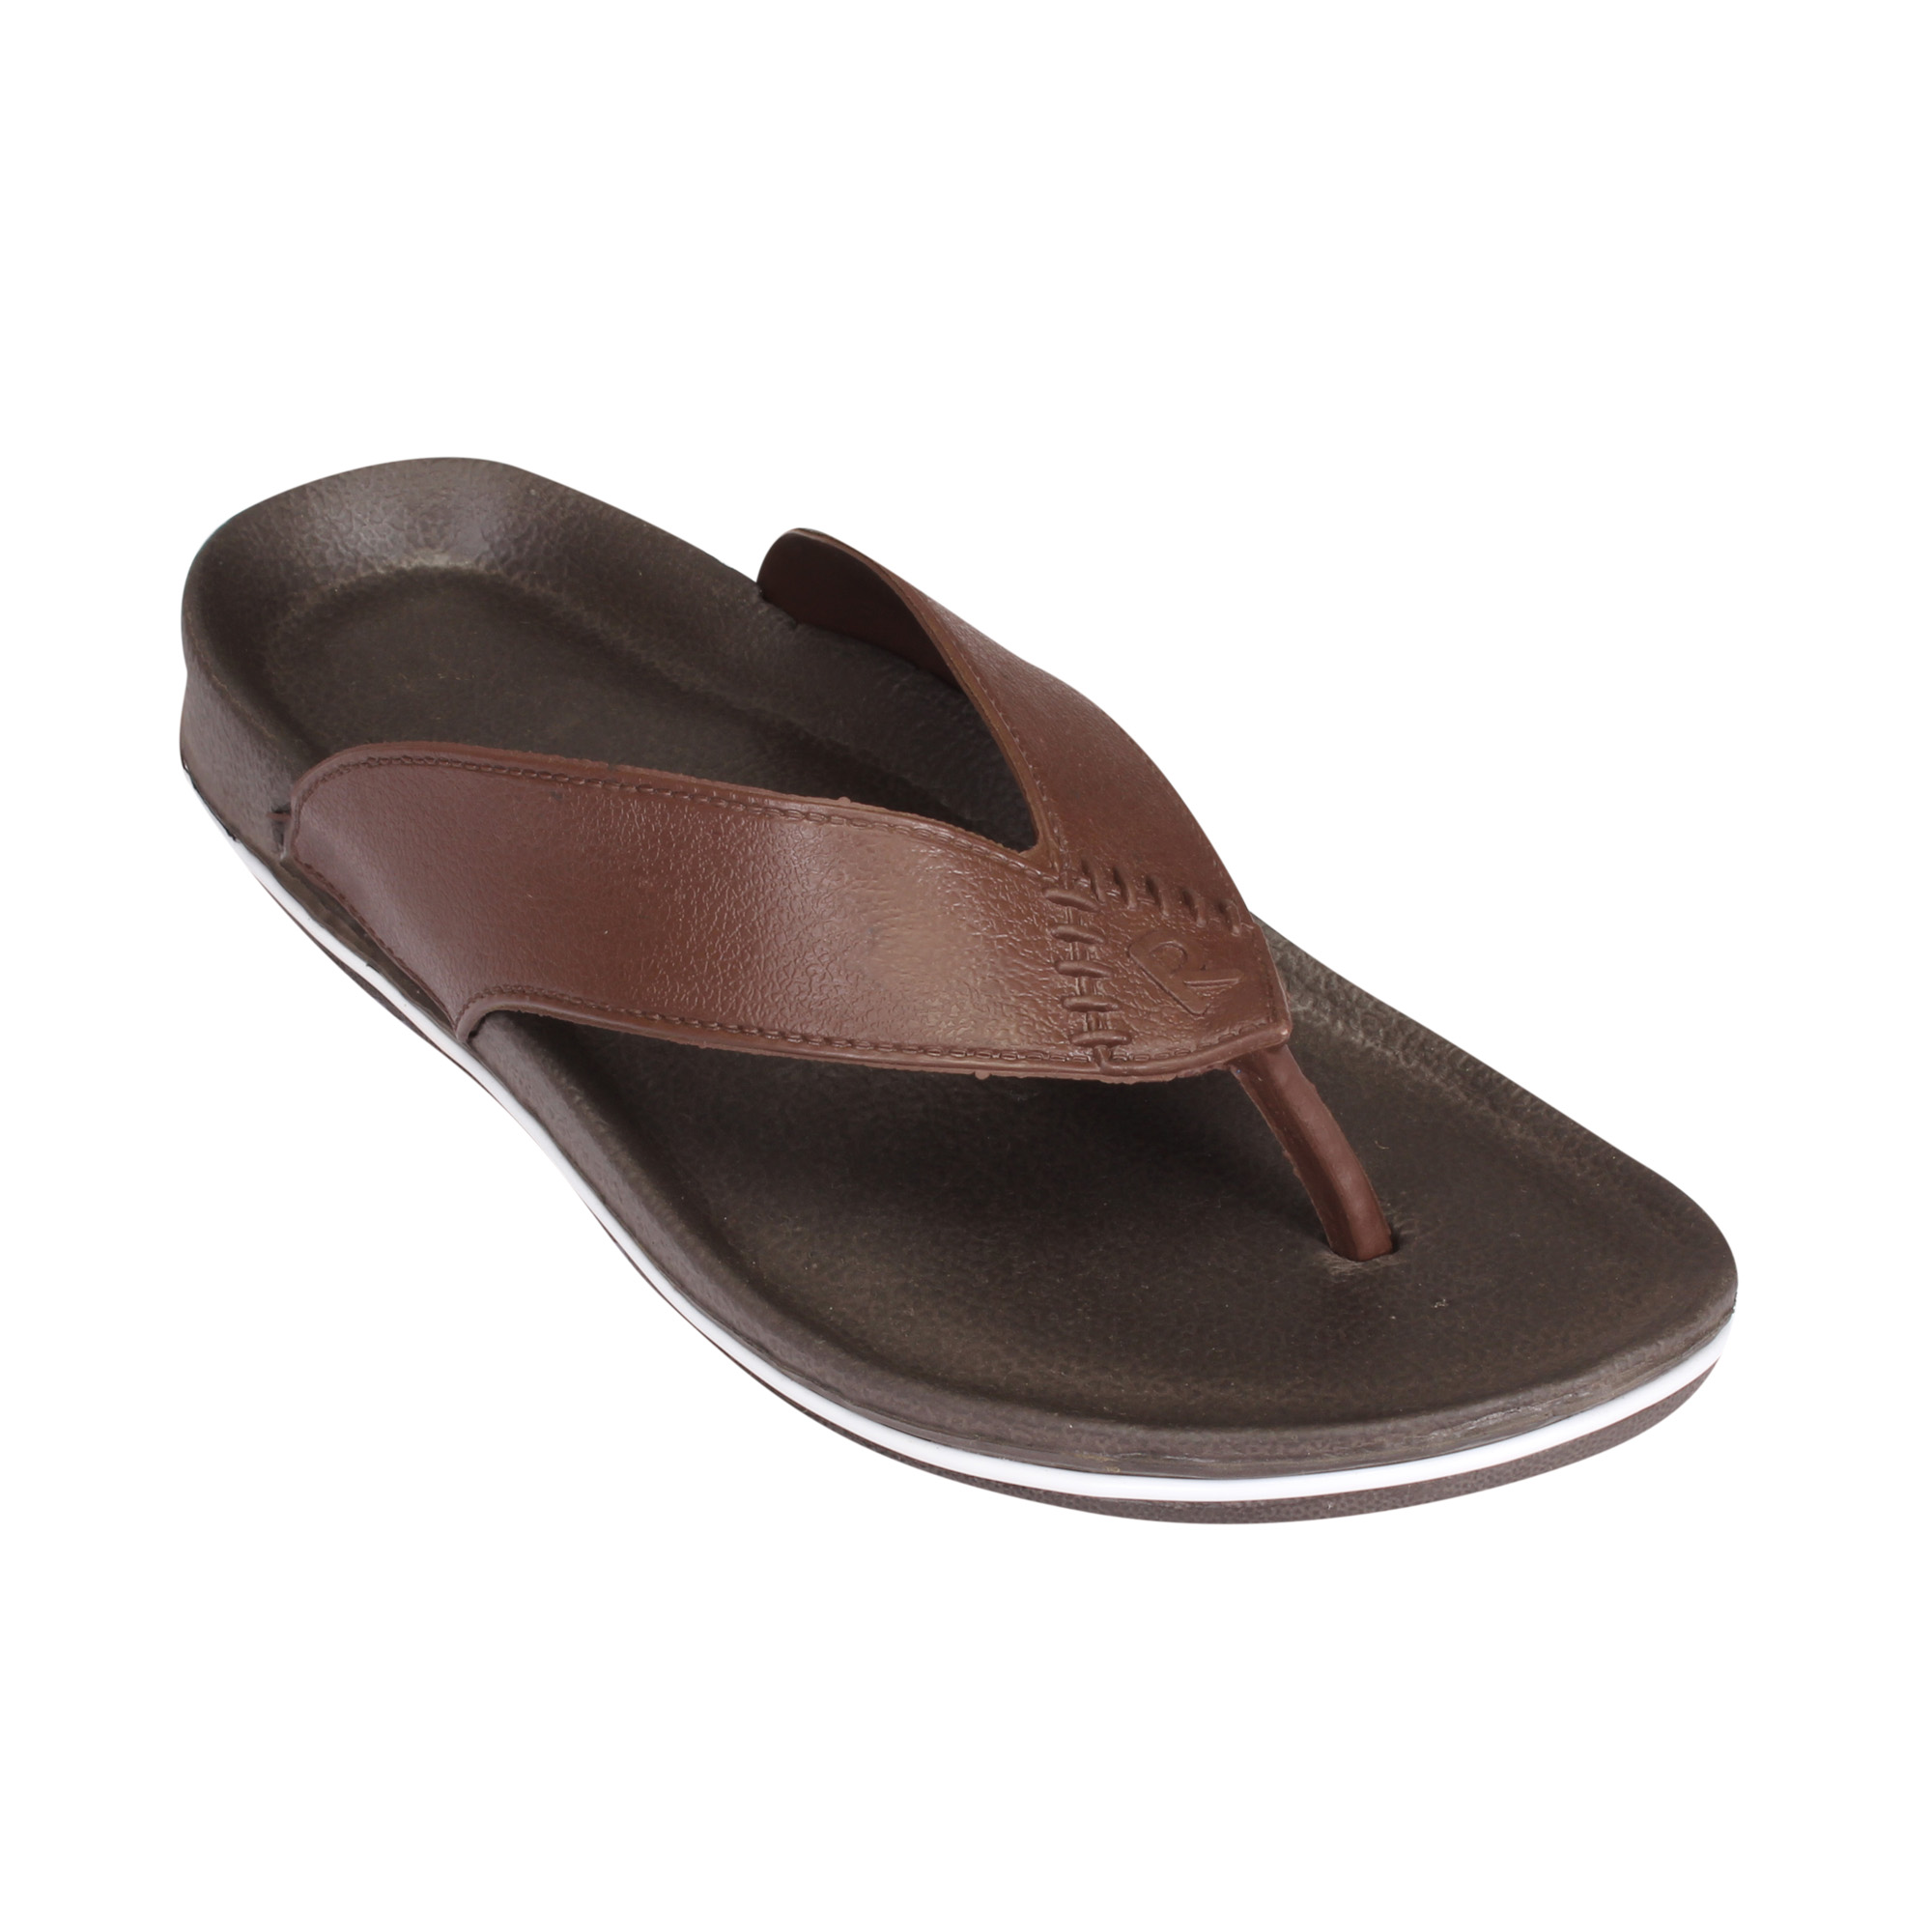 Shop online for Men's Sandals, Slides & Flip-Flops at whomeverf.cf Find fashion combined with comfort. Free Shipping. Free Returns. All the time.